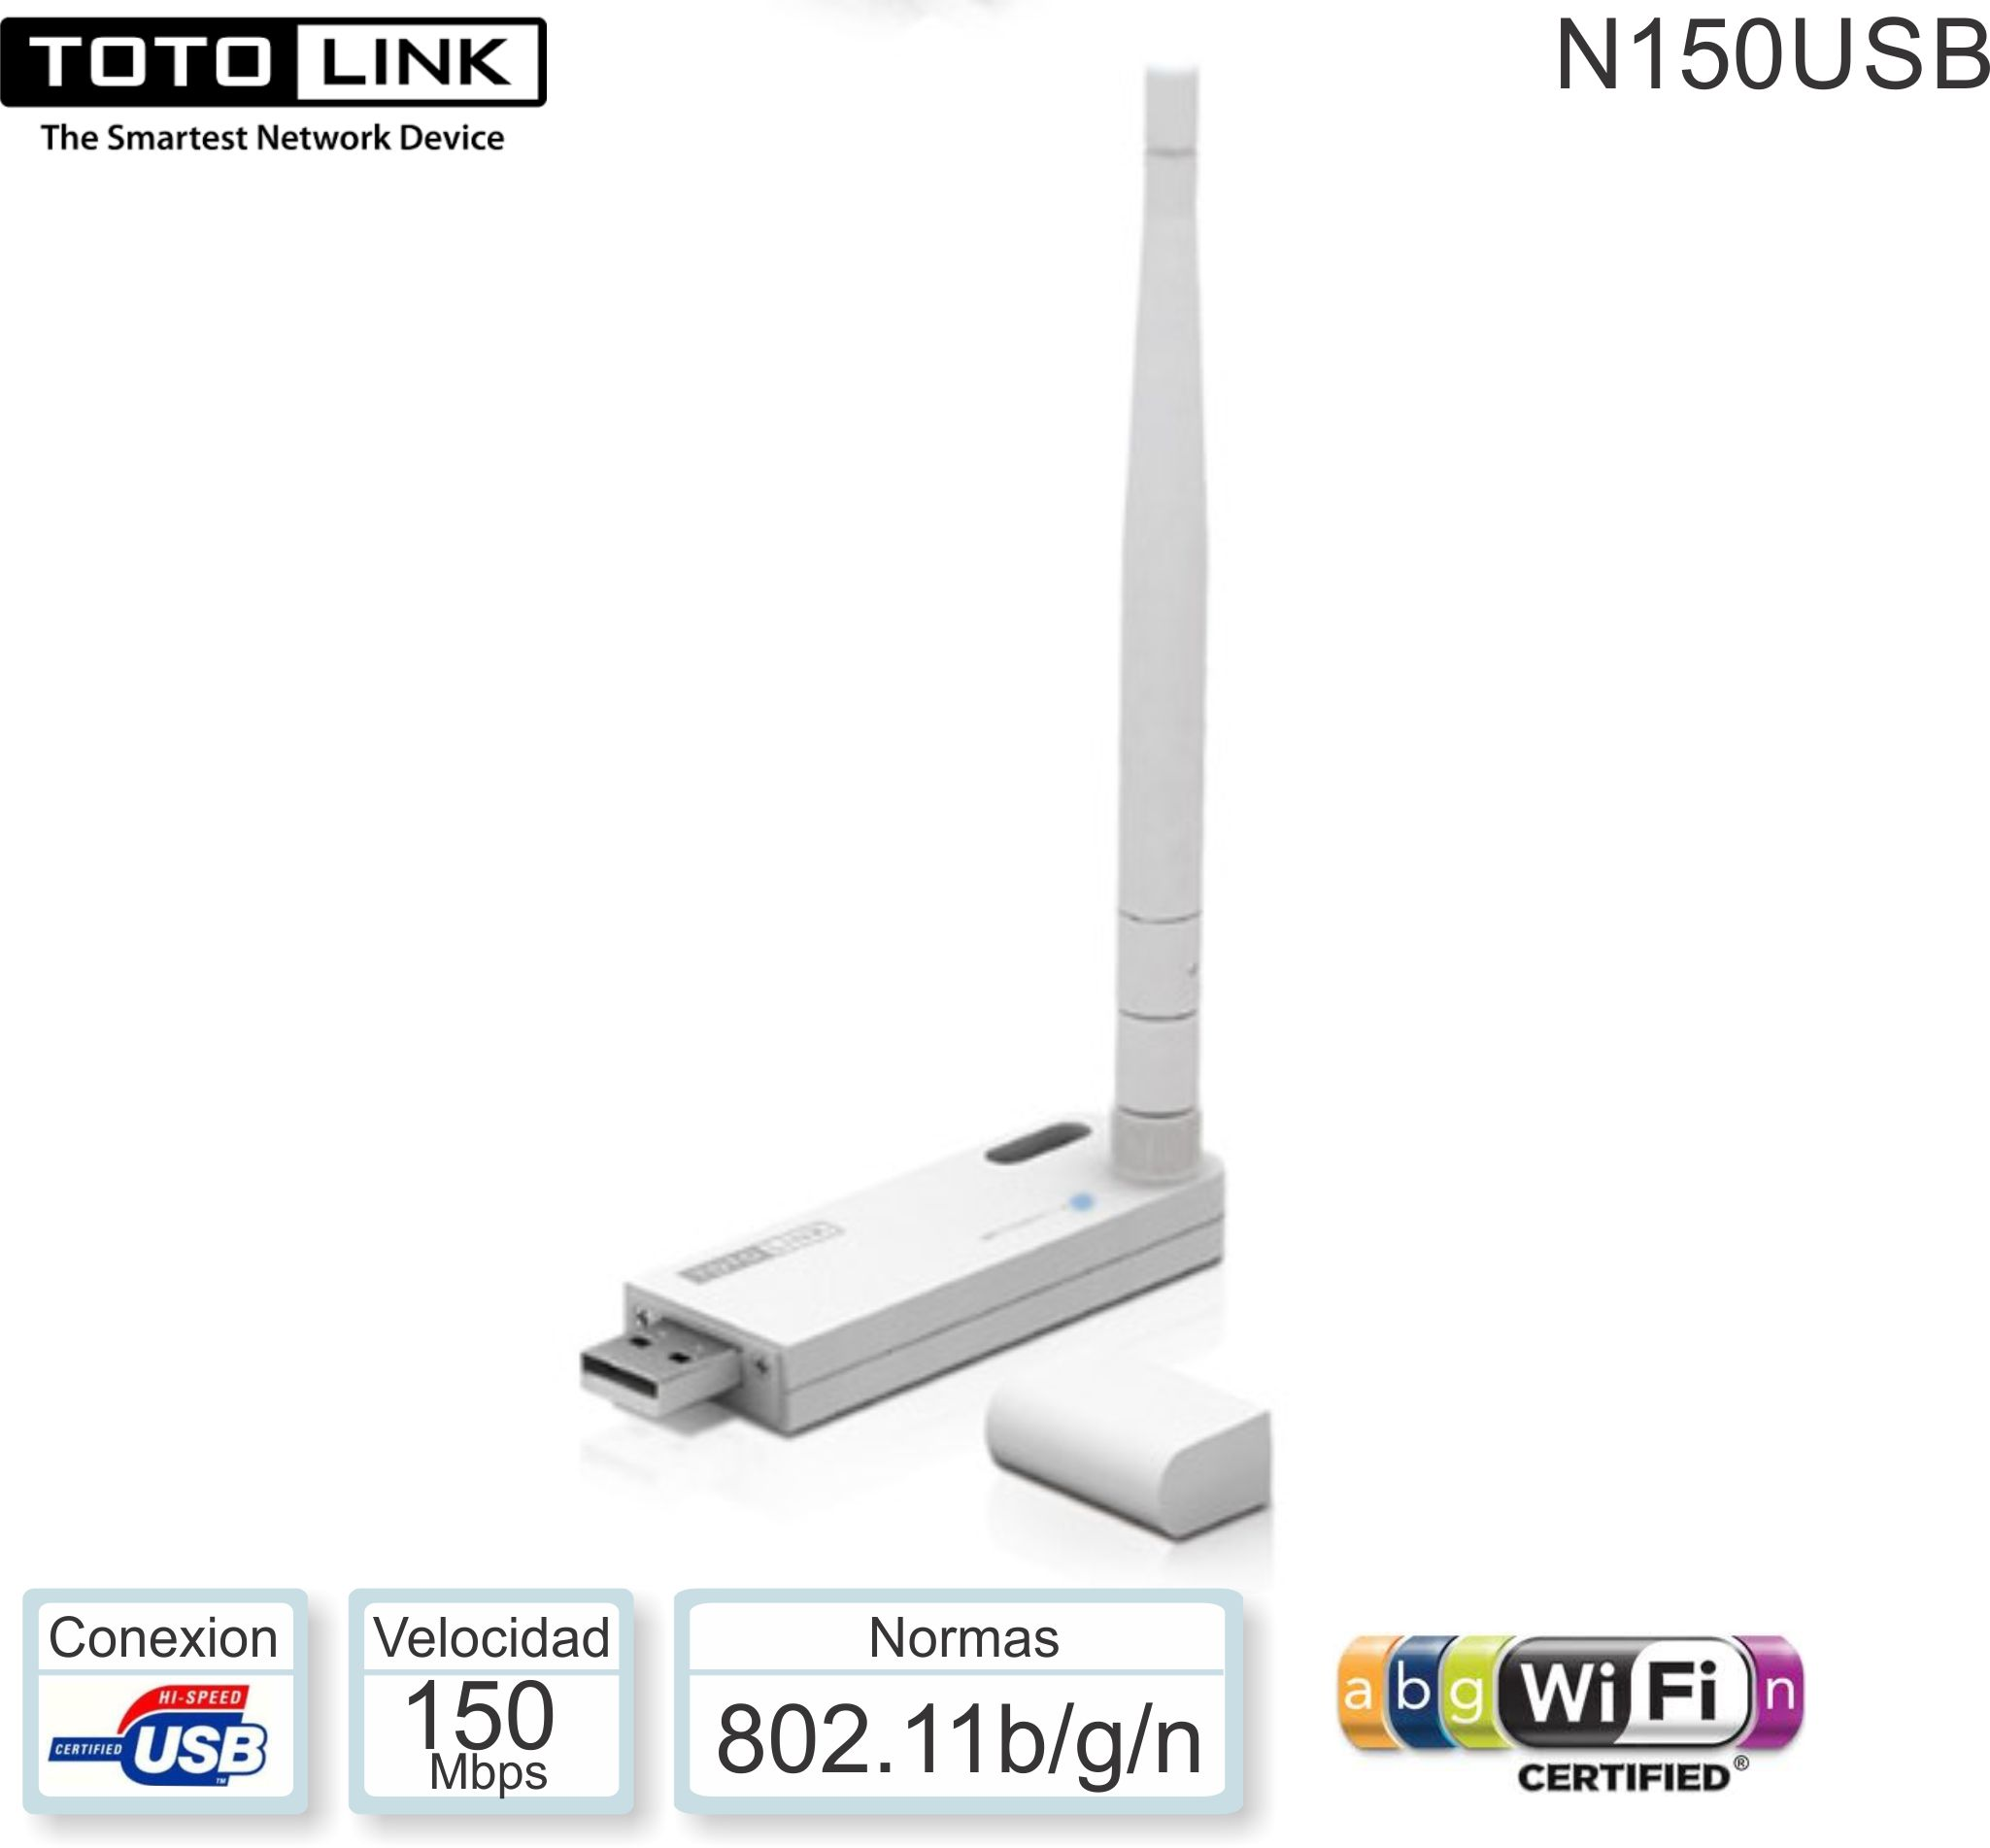 Red USB WIFI TOTOLINK N150USB